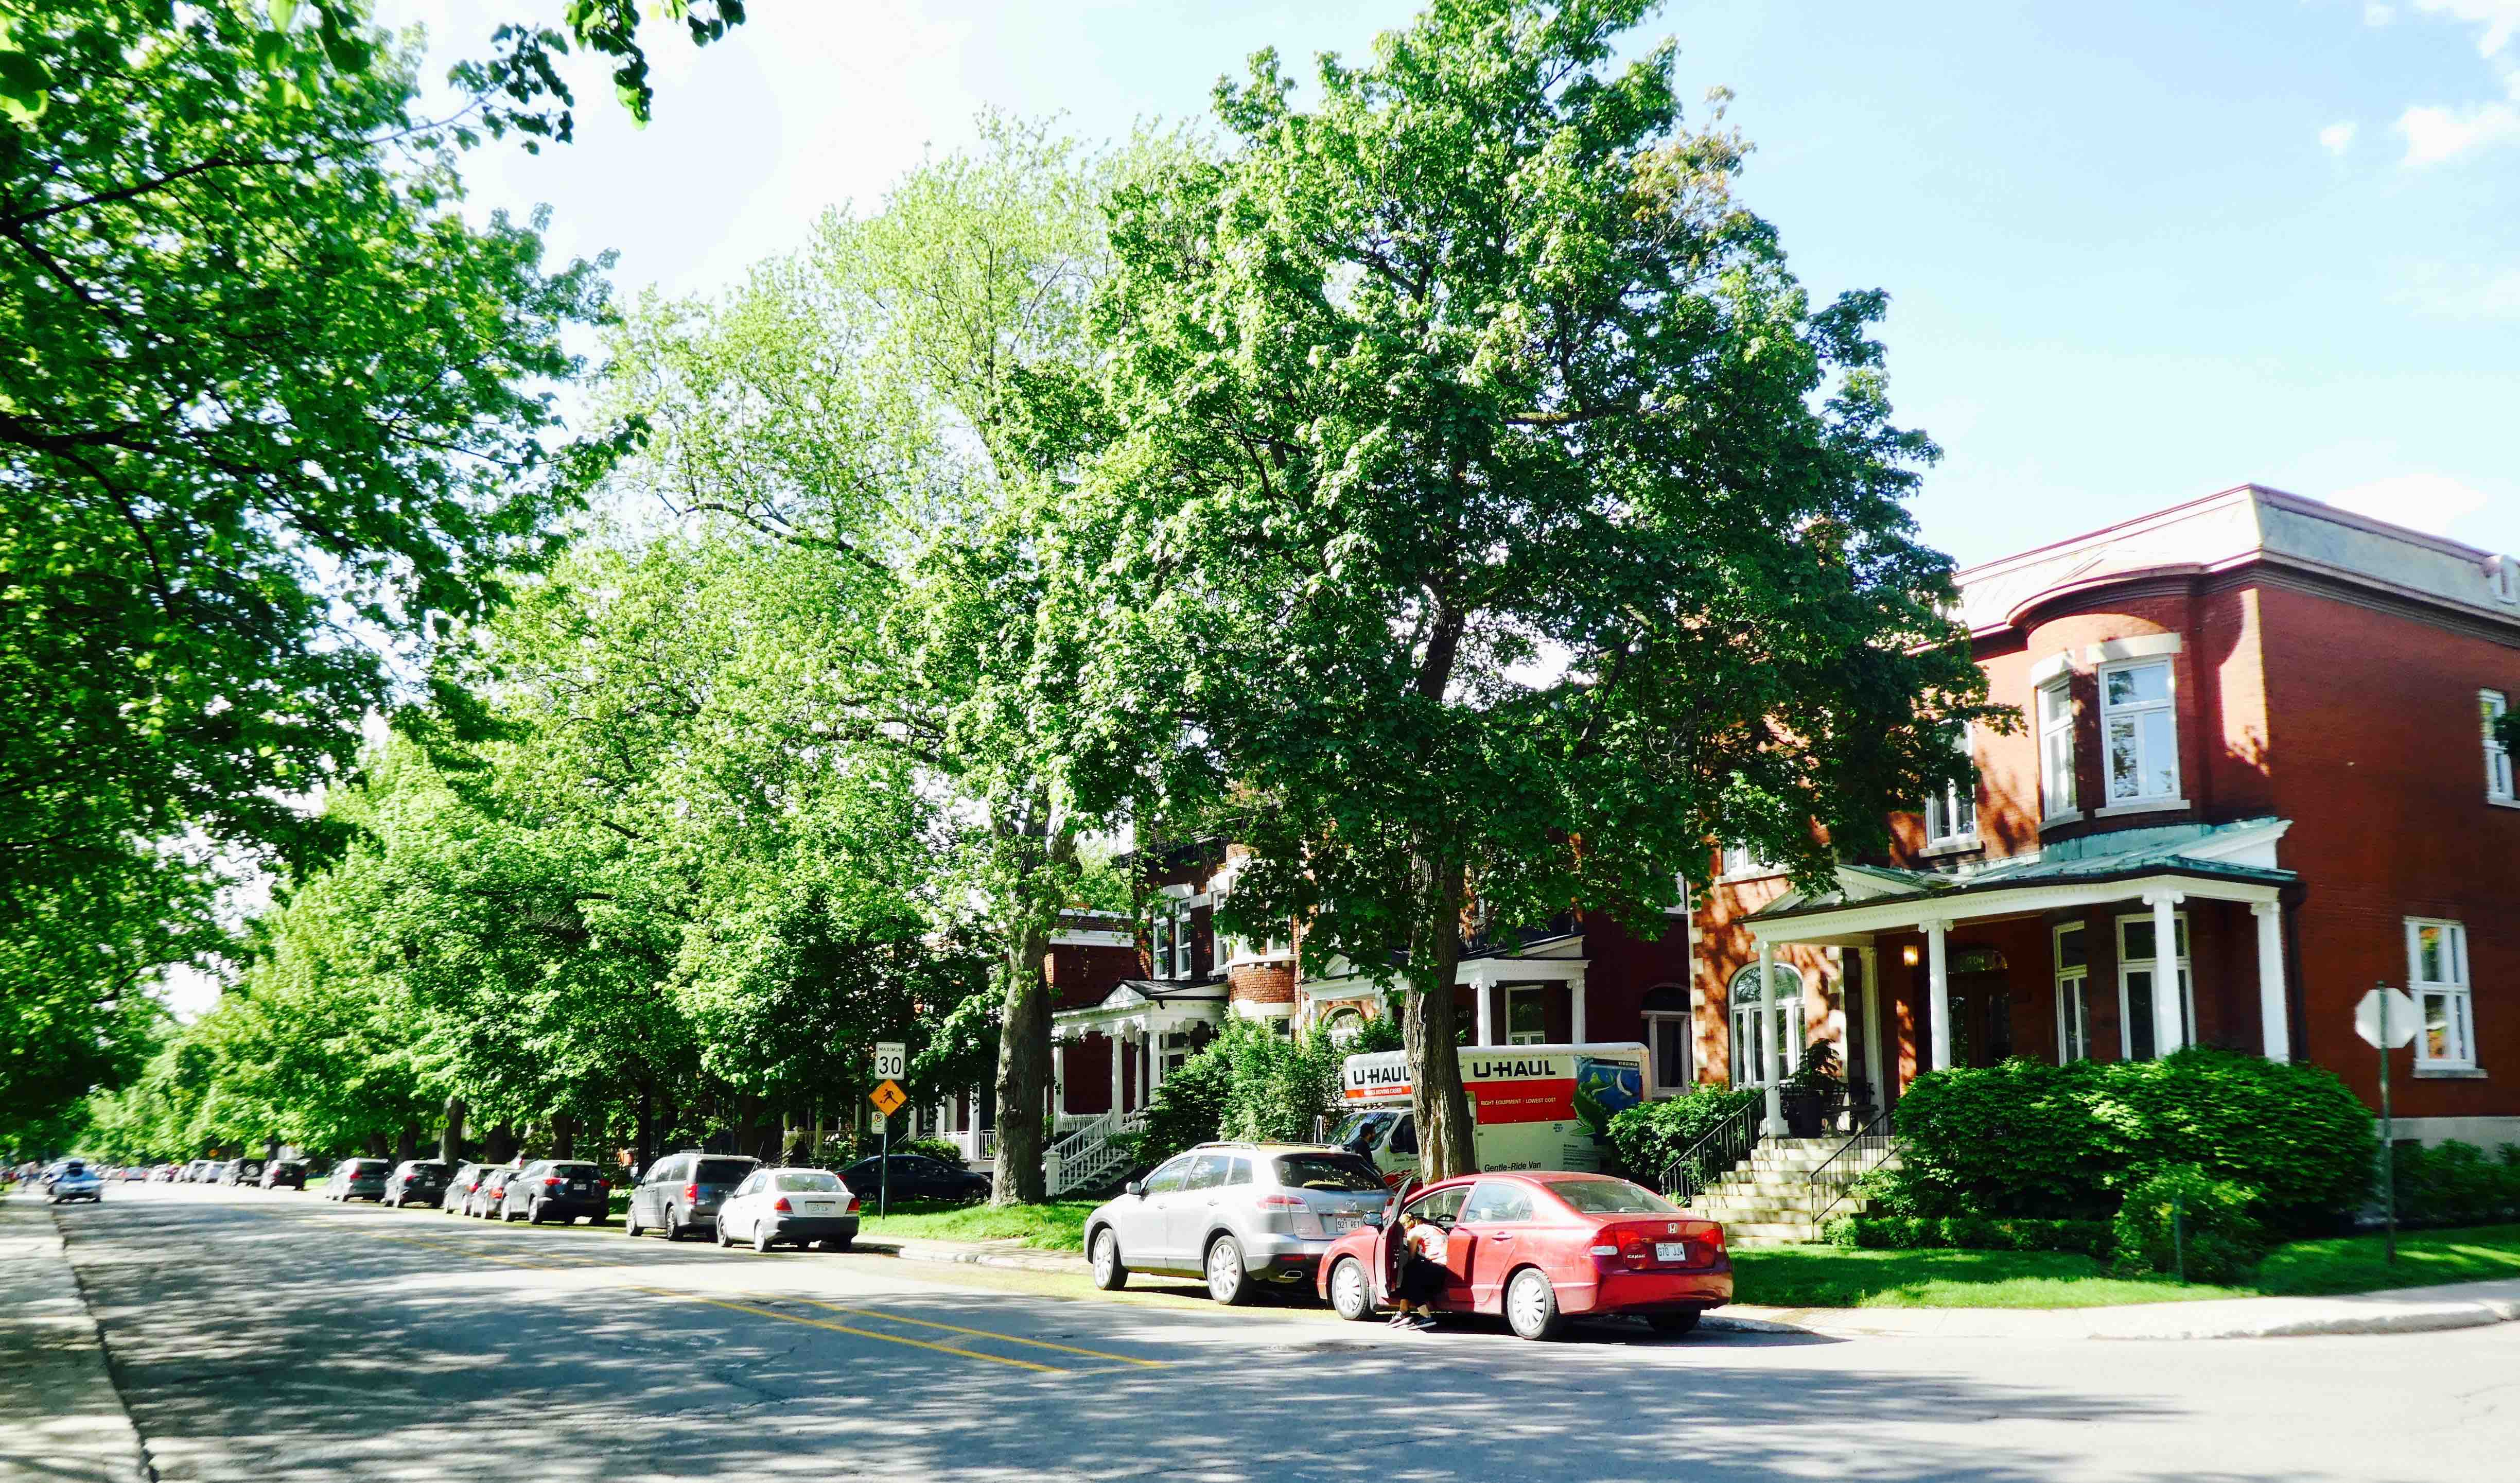 Outremont